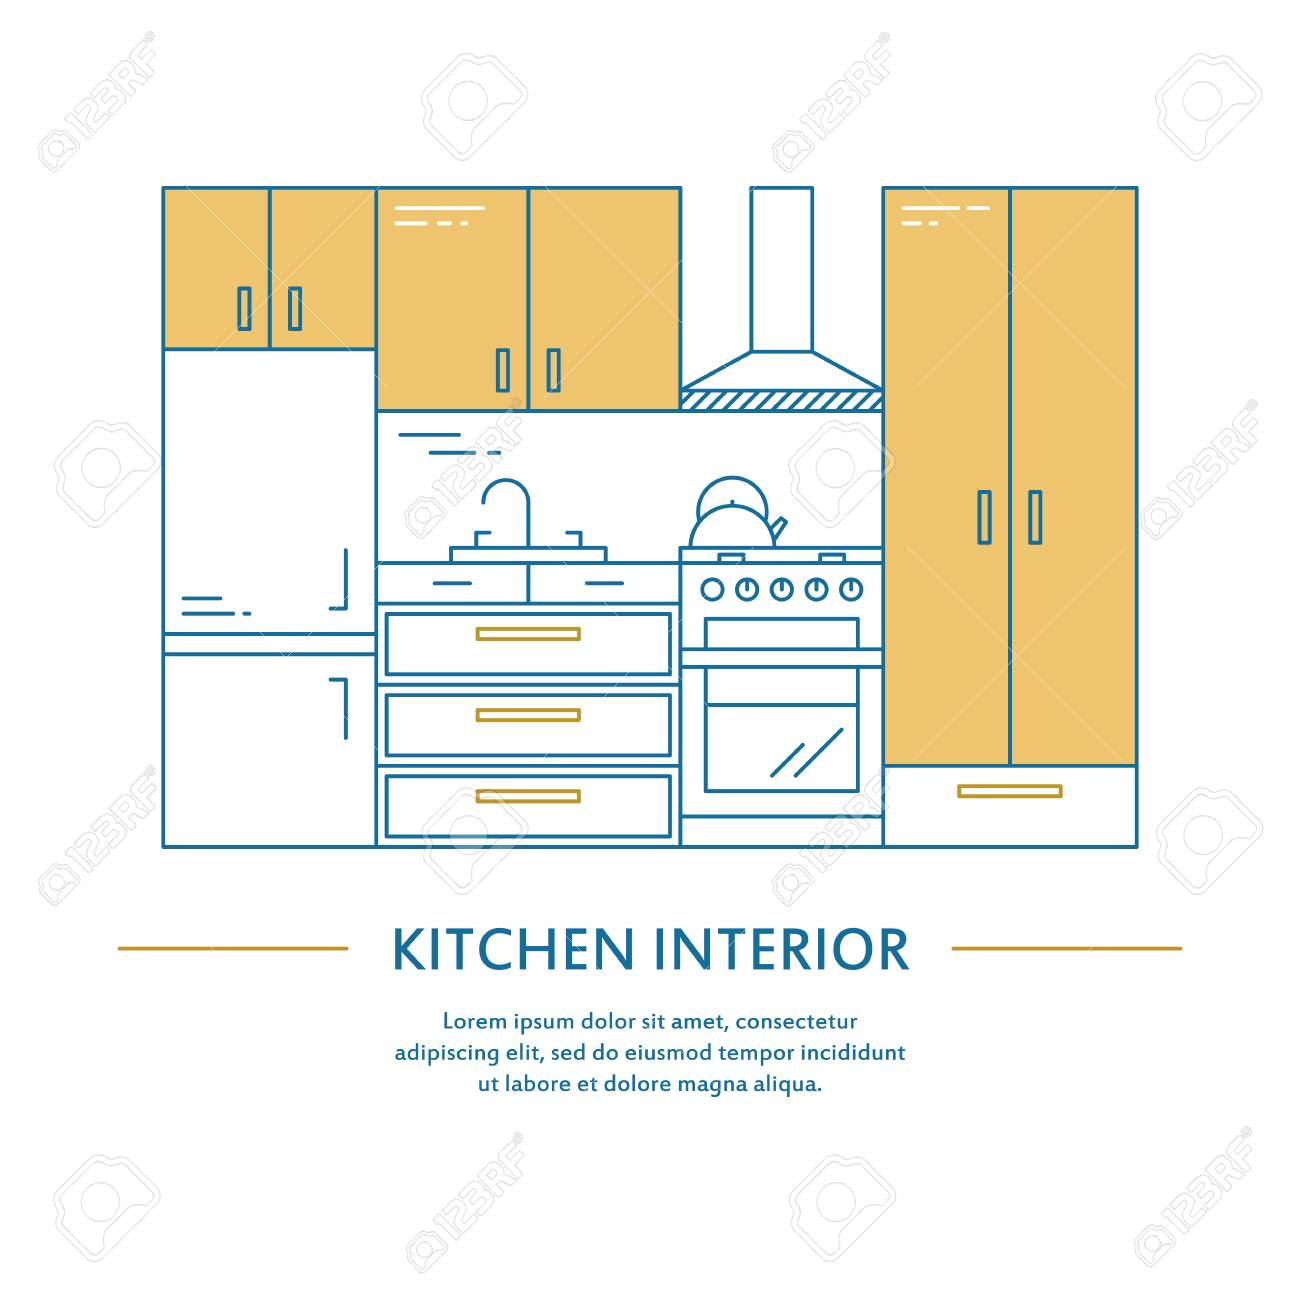 Interior Decoration Business Plan Vector Kitchen Interior Design Brochure Cover In Line Style